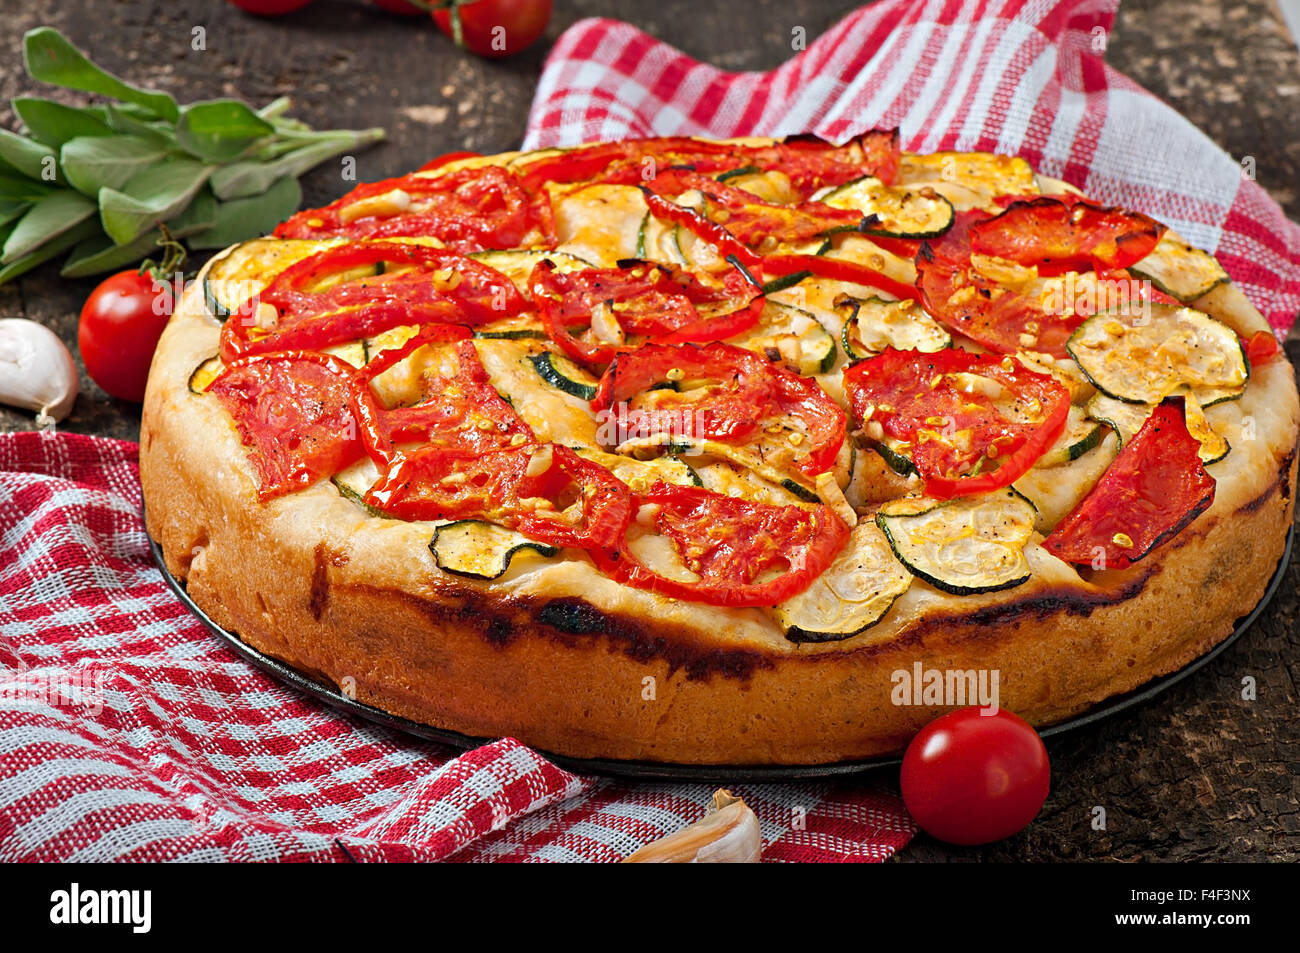 Focaccia with tomatoes and garlic - Stock Image